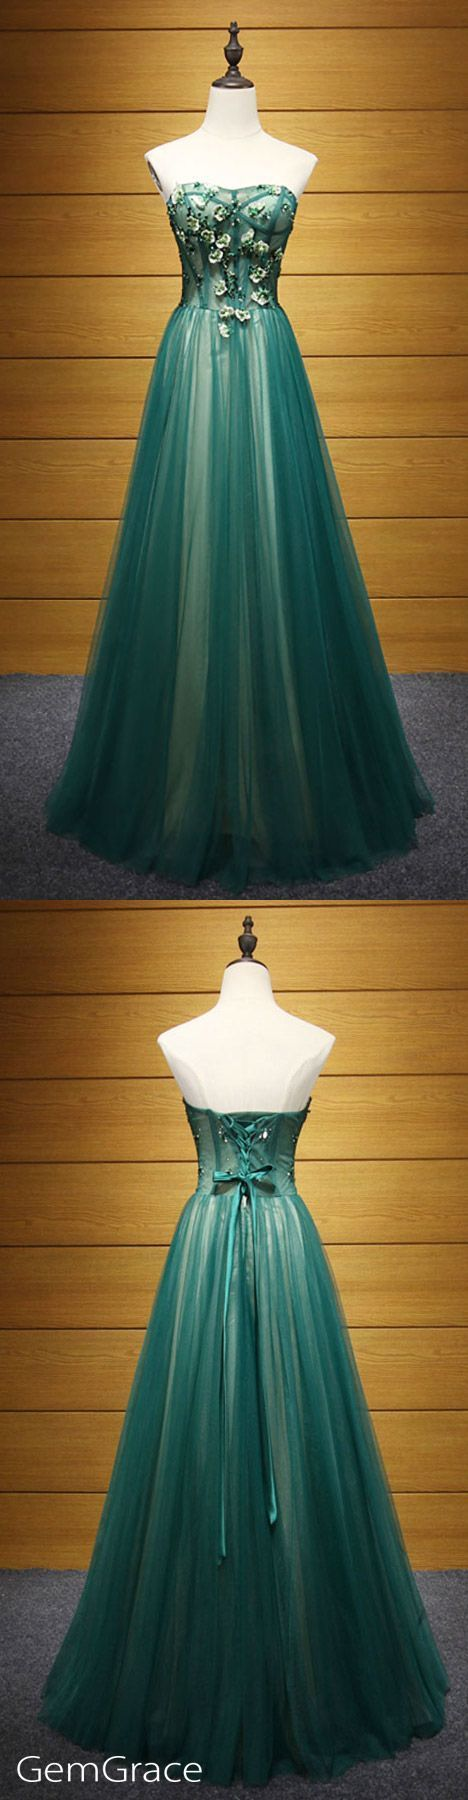 Elegant A-line Sweetheart Floor-length Tulle Prom Dress With Beading Dress